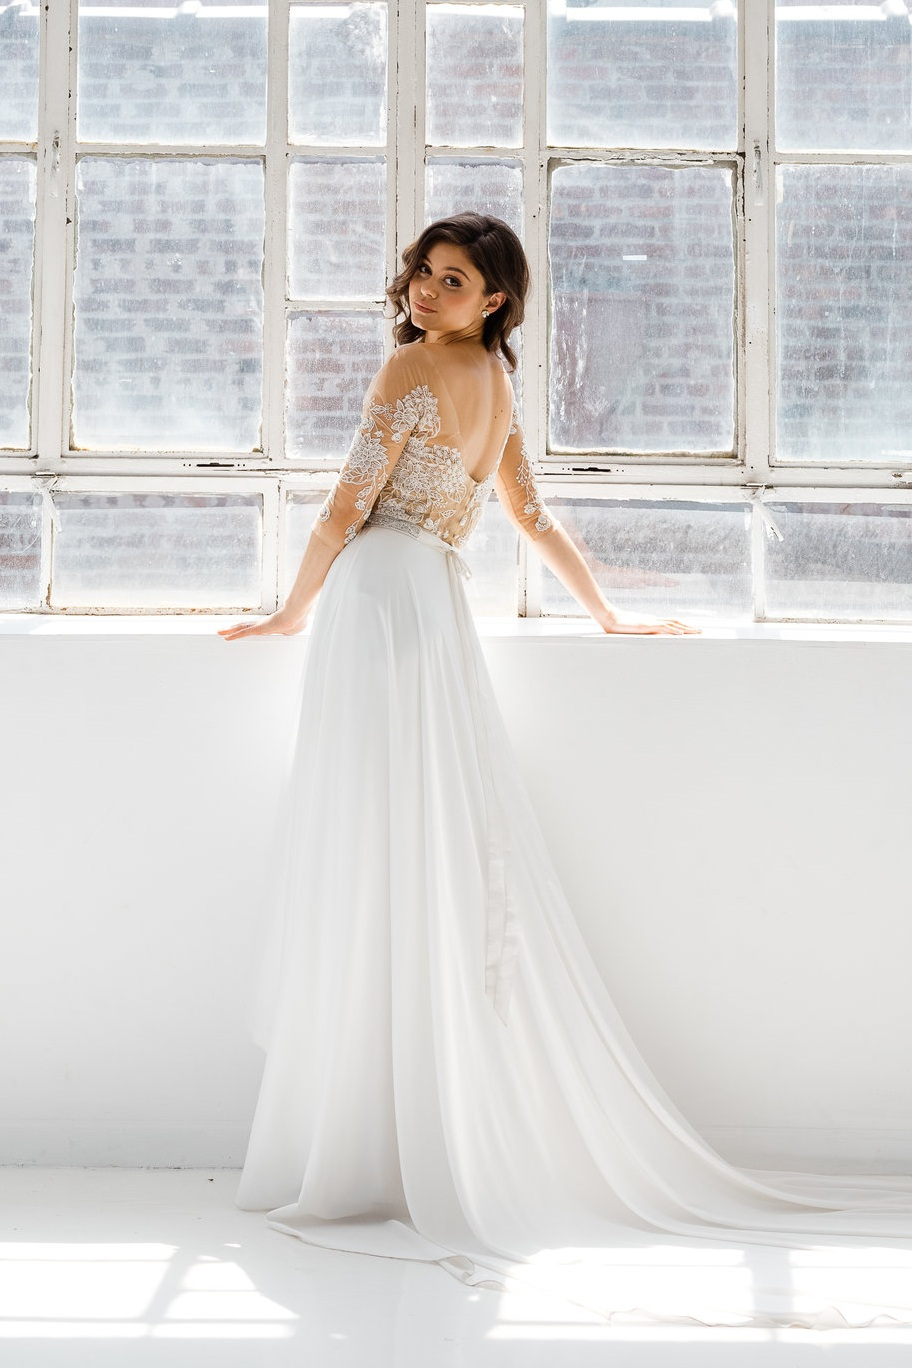 26A.+Reese+Front-Rebecca+Schoneveld-2-153_sweetheart_neckline_modern_ball_gown_simple_with_pockets_and_buttons.jpg